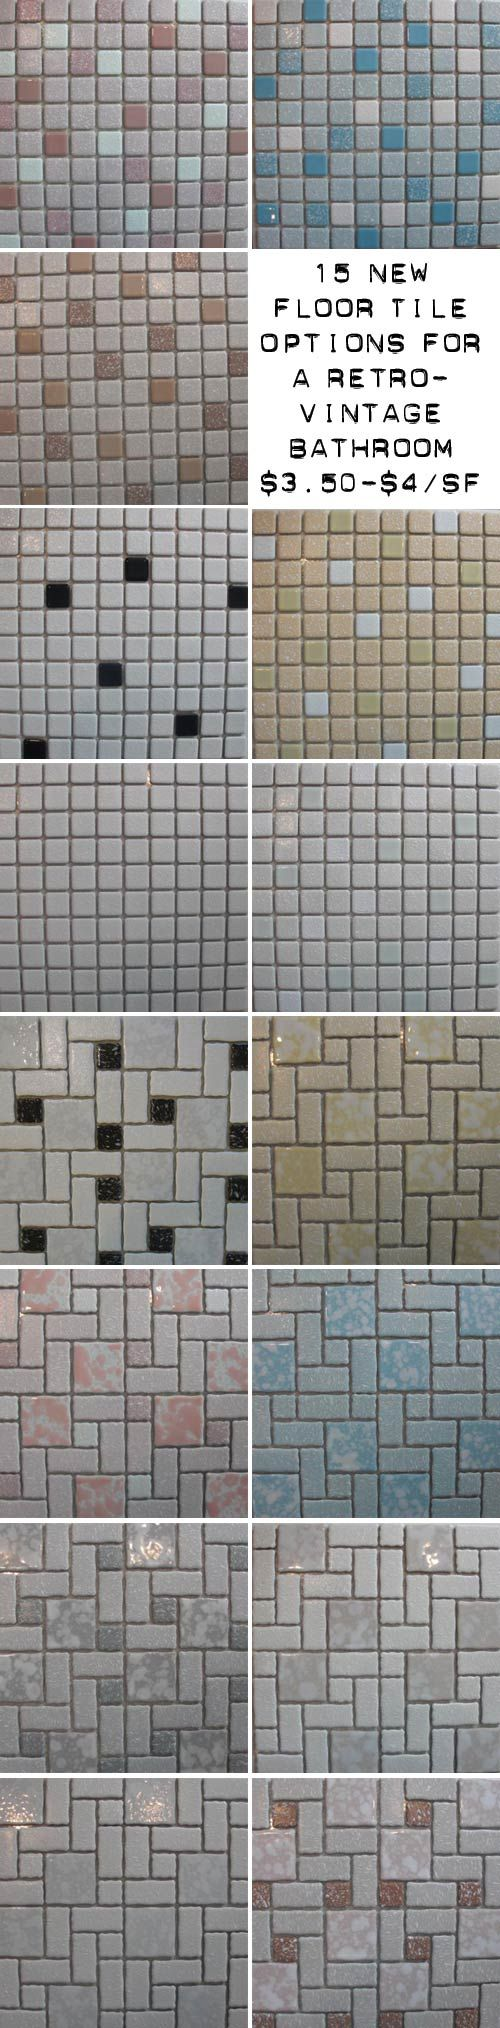 We discovered a bunch of new retro floor tile options -- lots of colorful small mosaics -- and the price is right -- $3.50 and $4 per square foot!